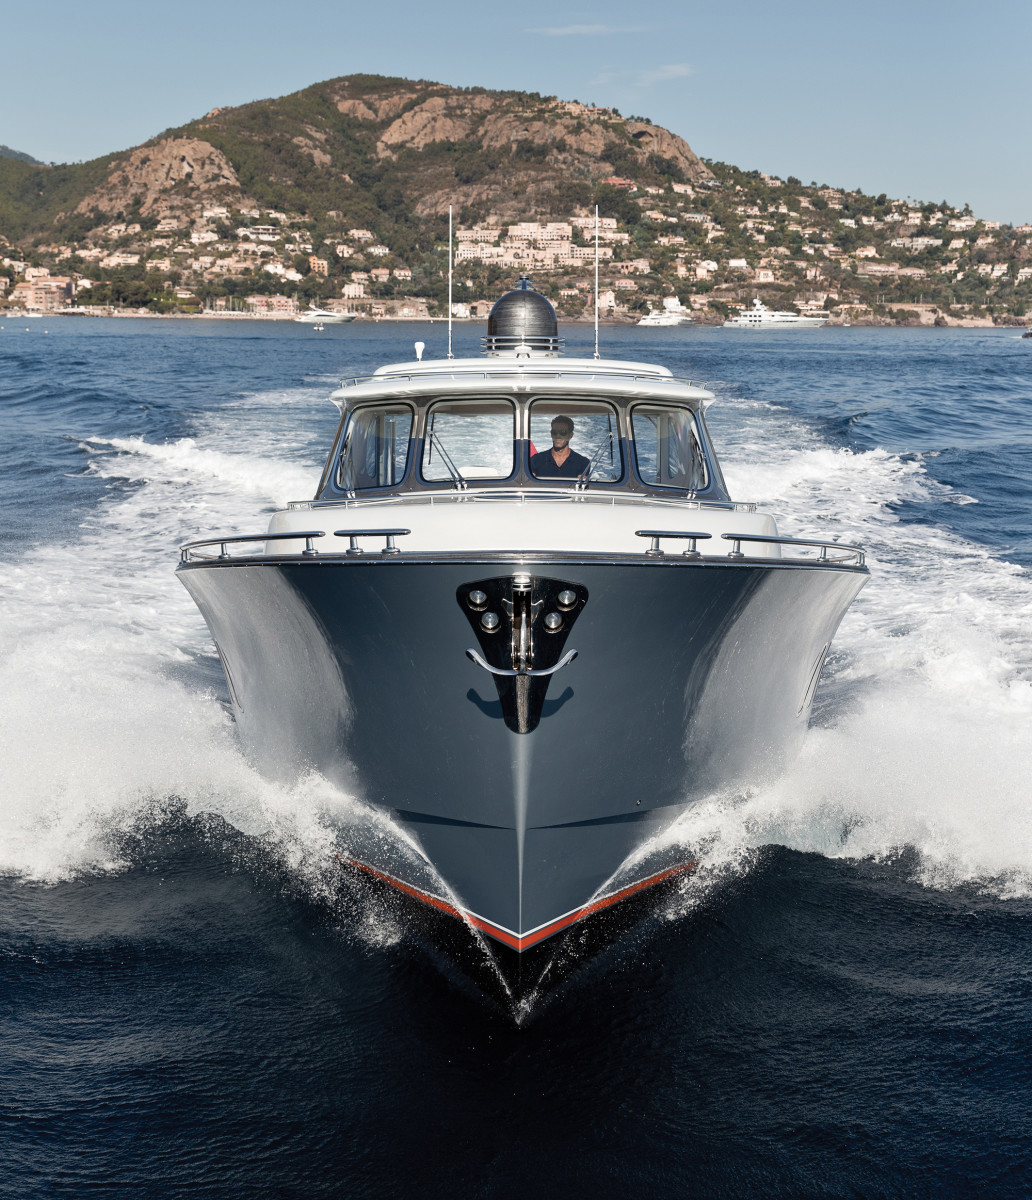 The Zeelander Z55 offers performance to back up her appearance, with a top end near 35 knots.